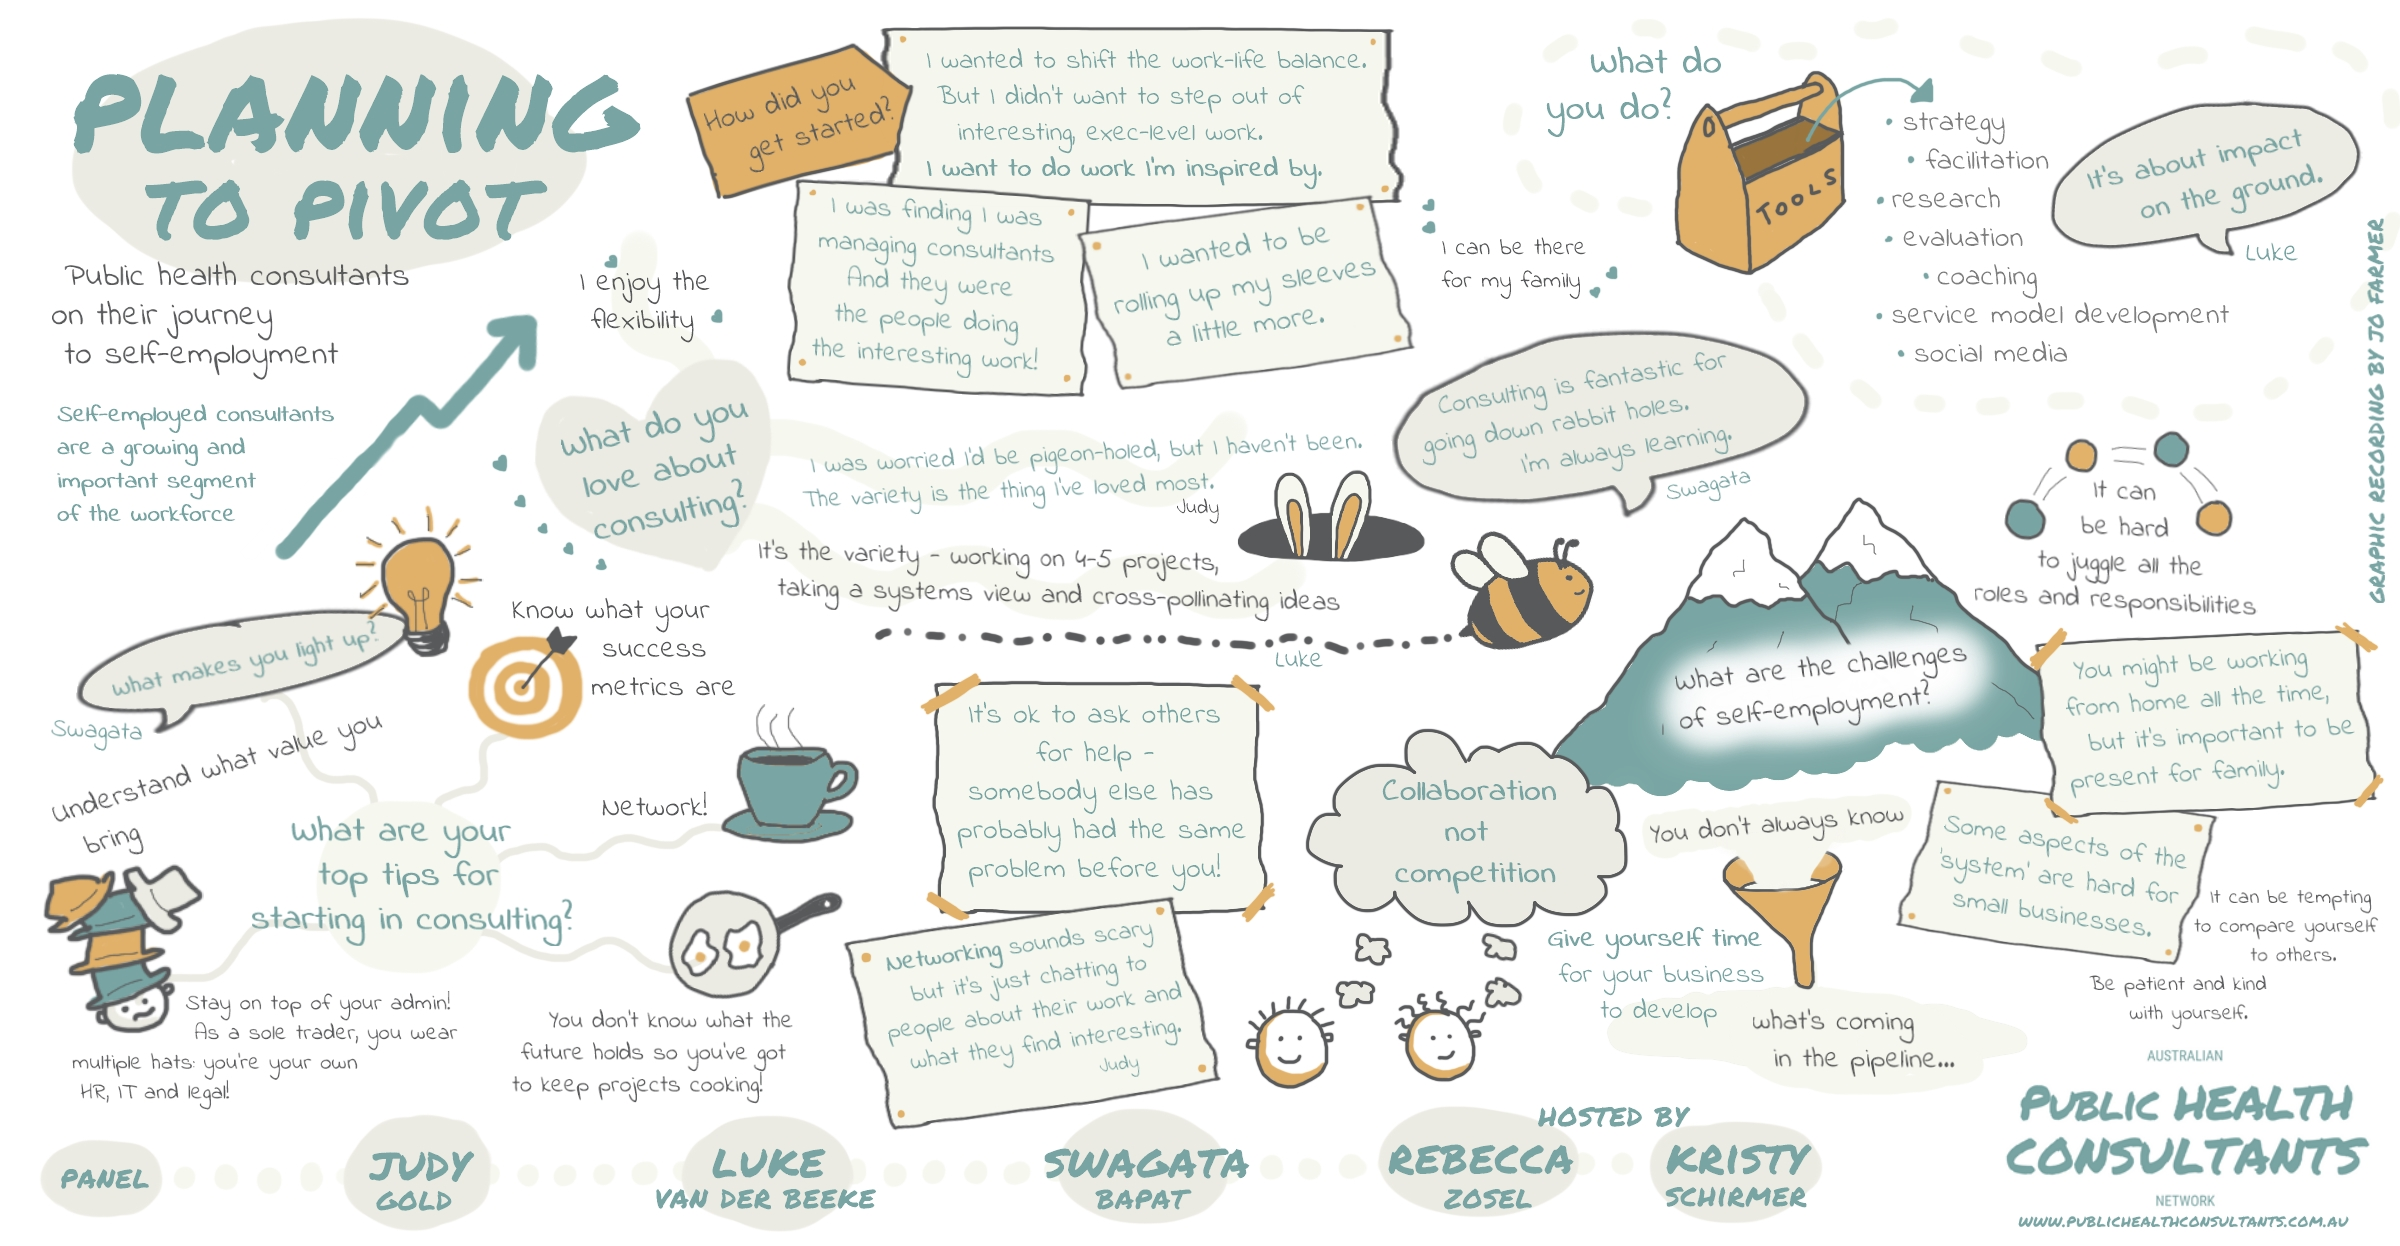 Graphic recording of planning to pivot webinar featuring illustrations from Jo Farmer